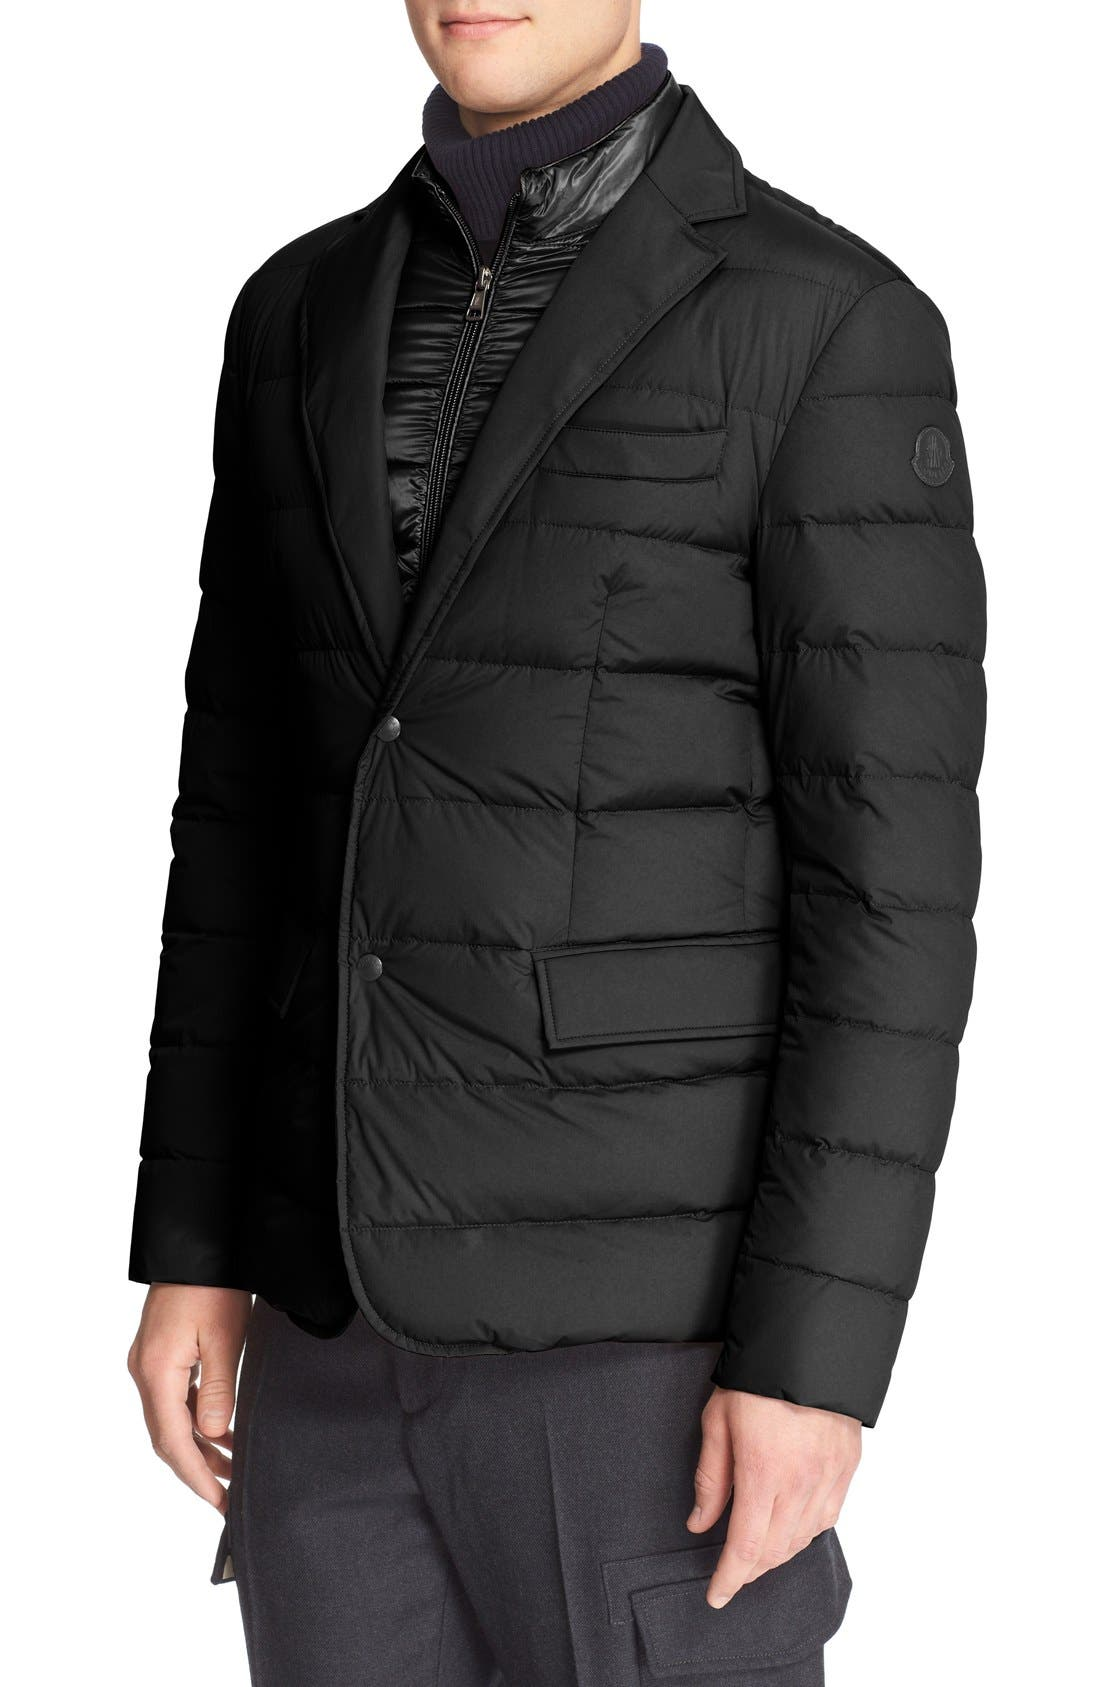 MONCLER 'Ferrand' Quilted Sport Coat